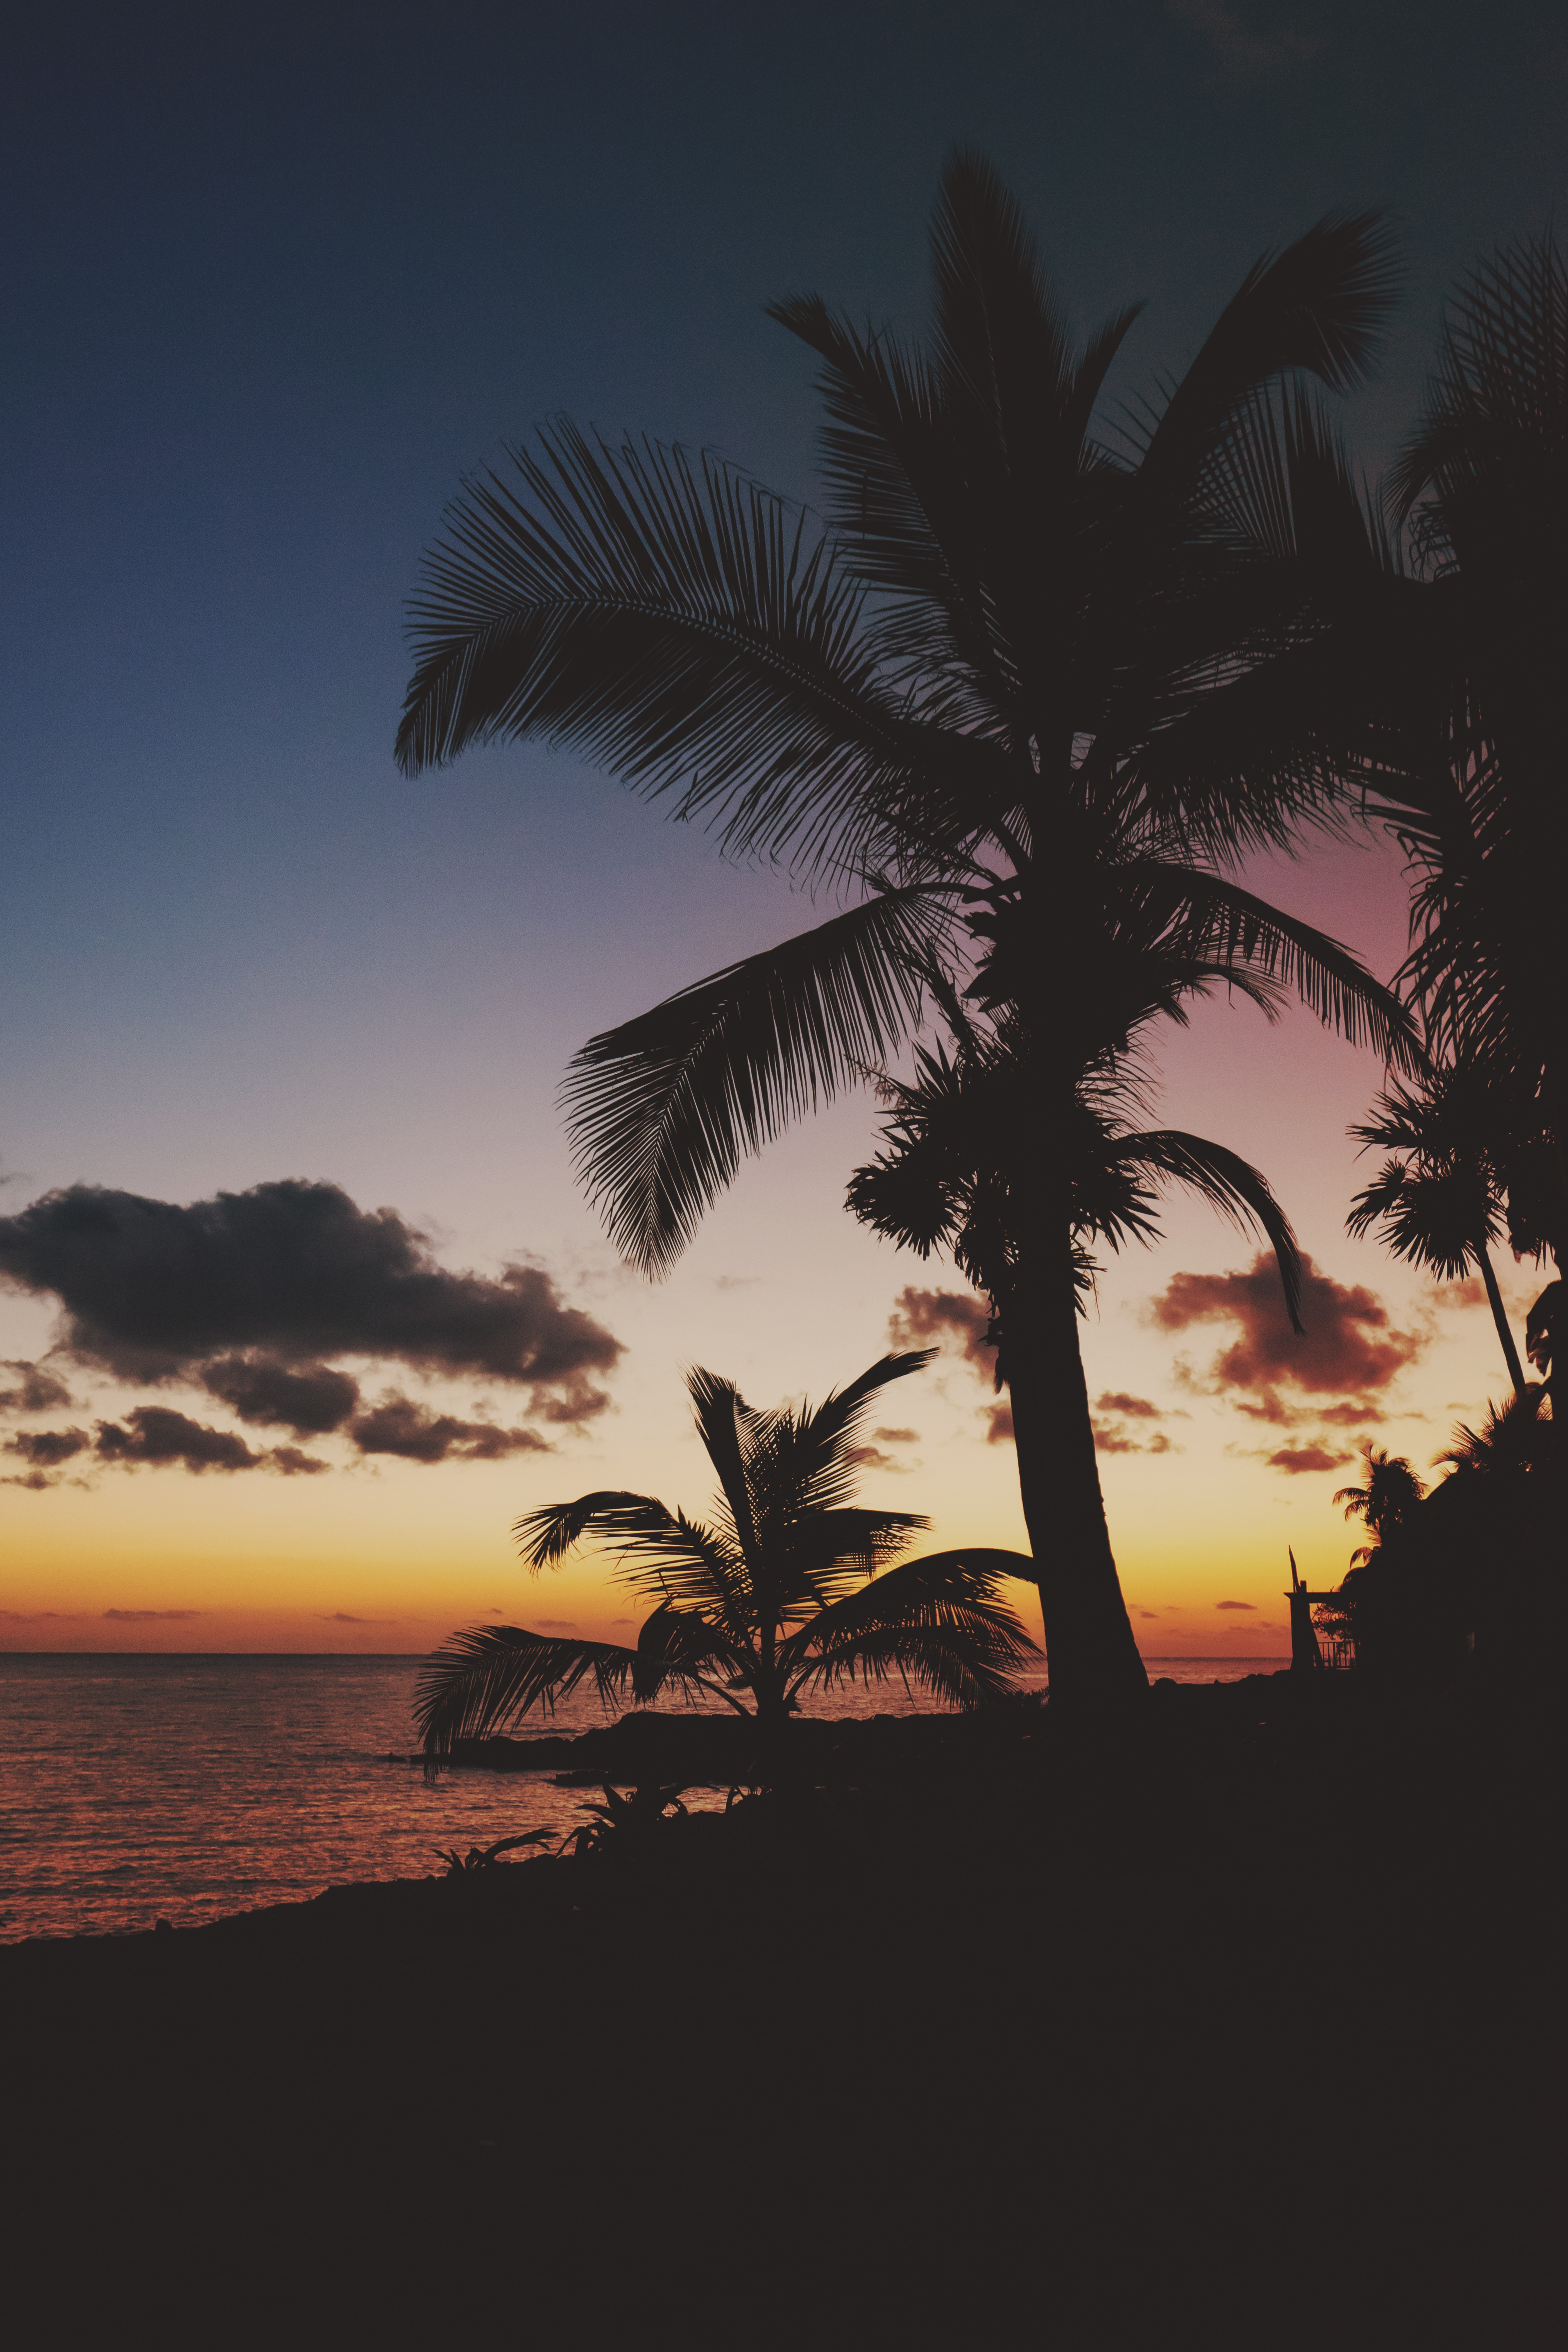 92135 download wallpaper Nature, Tropics, Sunset, Branches, Mexico, Palms screensavers and pictures for free